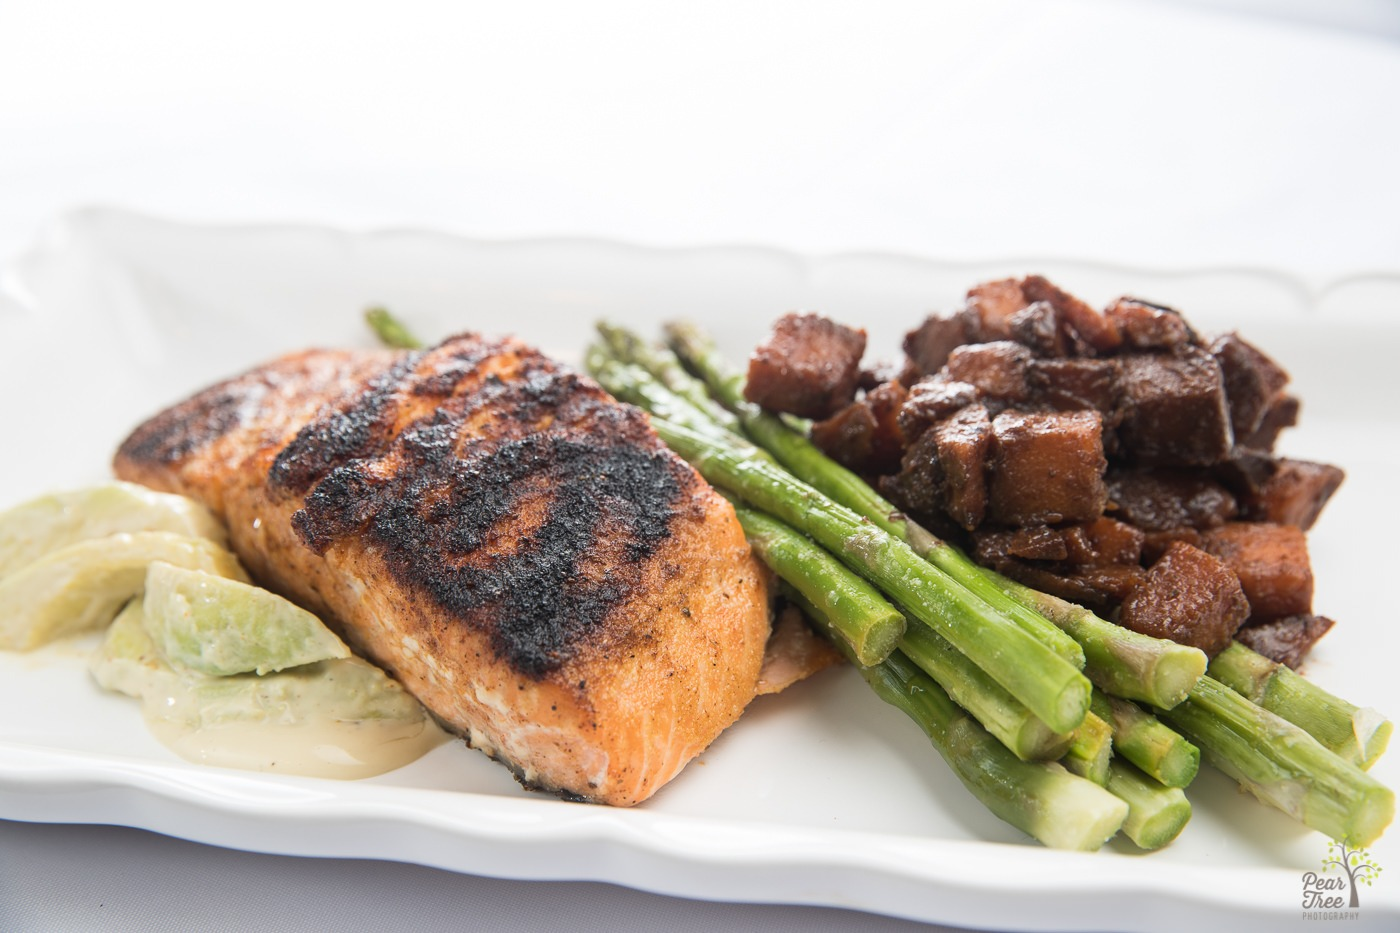 Blackened salmon with fresh asparagus, potatoes, and creamy avocado slices prepared by Divine Taste of Heaven.